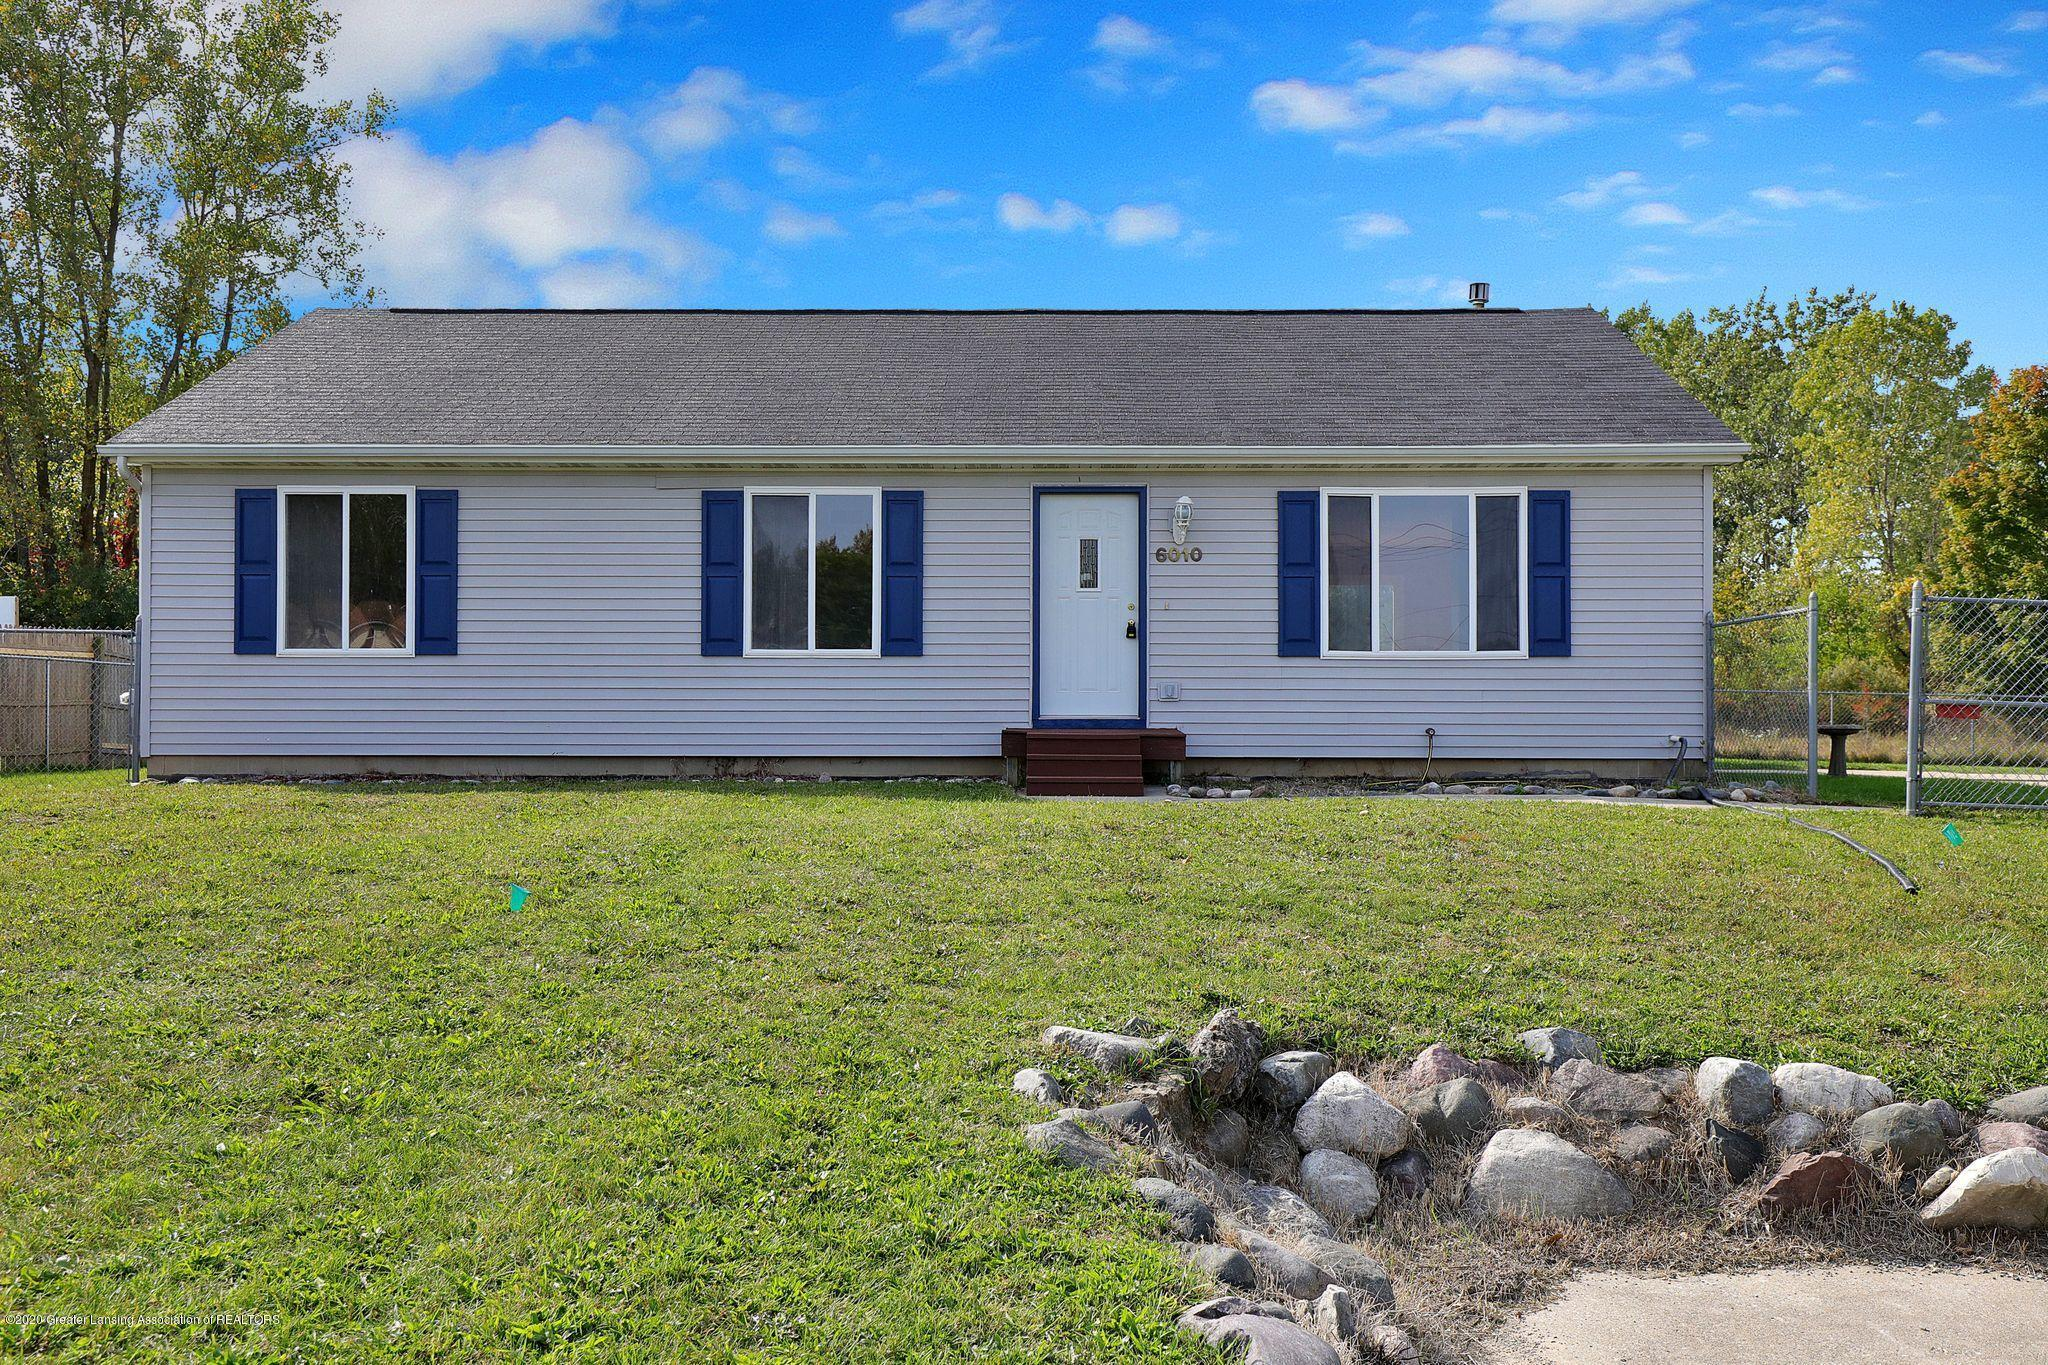 6010 Wise Rd - 1 - 1